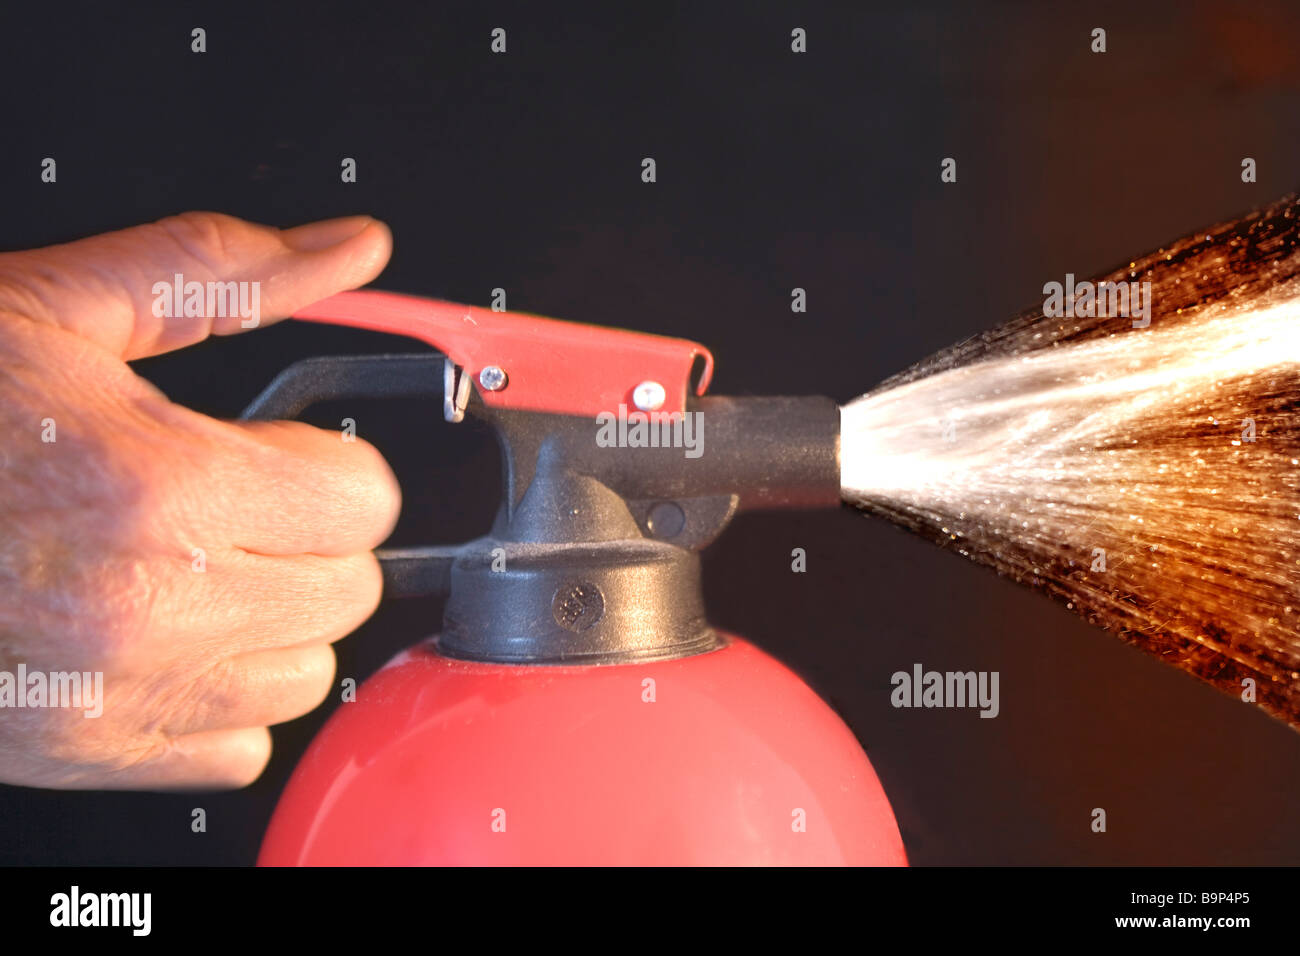 Fire extinguisher in use - Stock Image